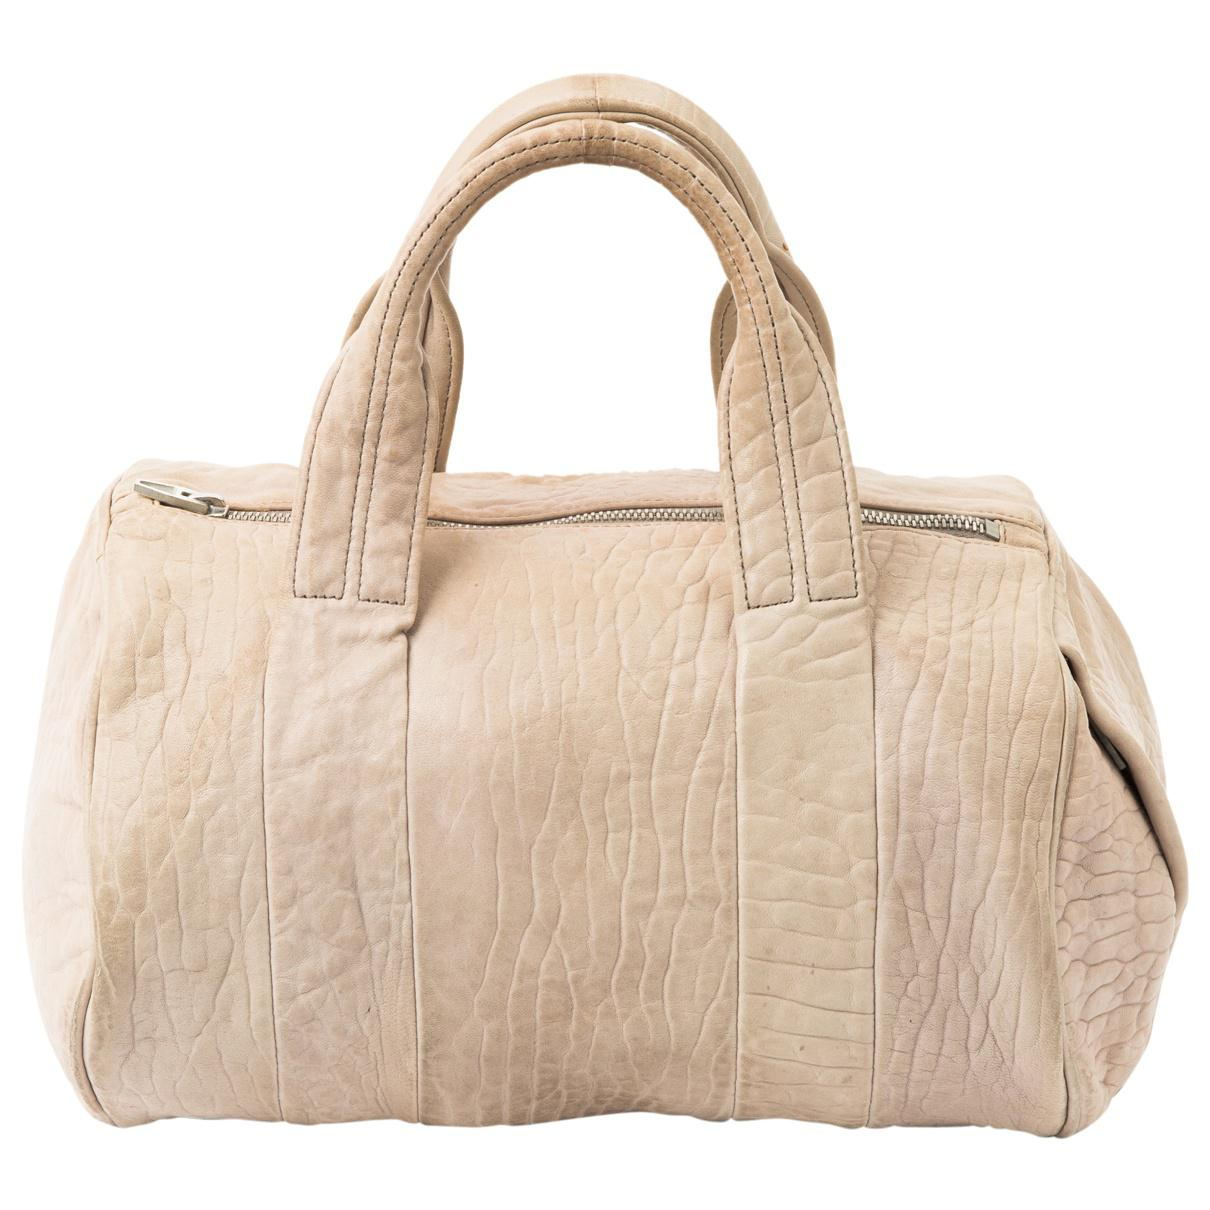 Alexander Wang Pre-owned - Rocco leather handbag TDWPSUfO0